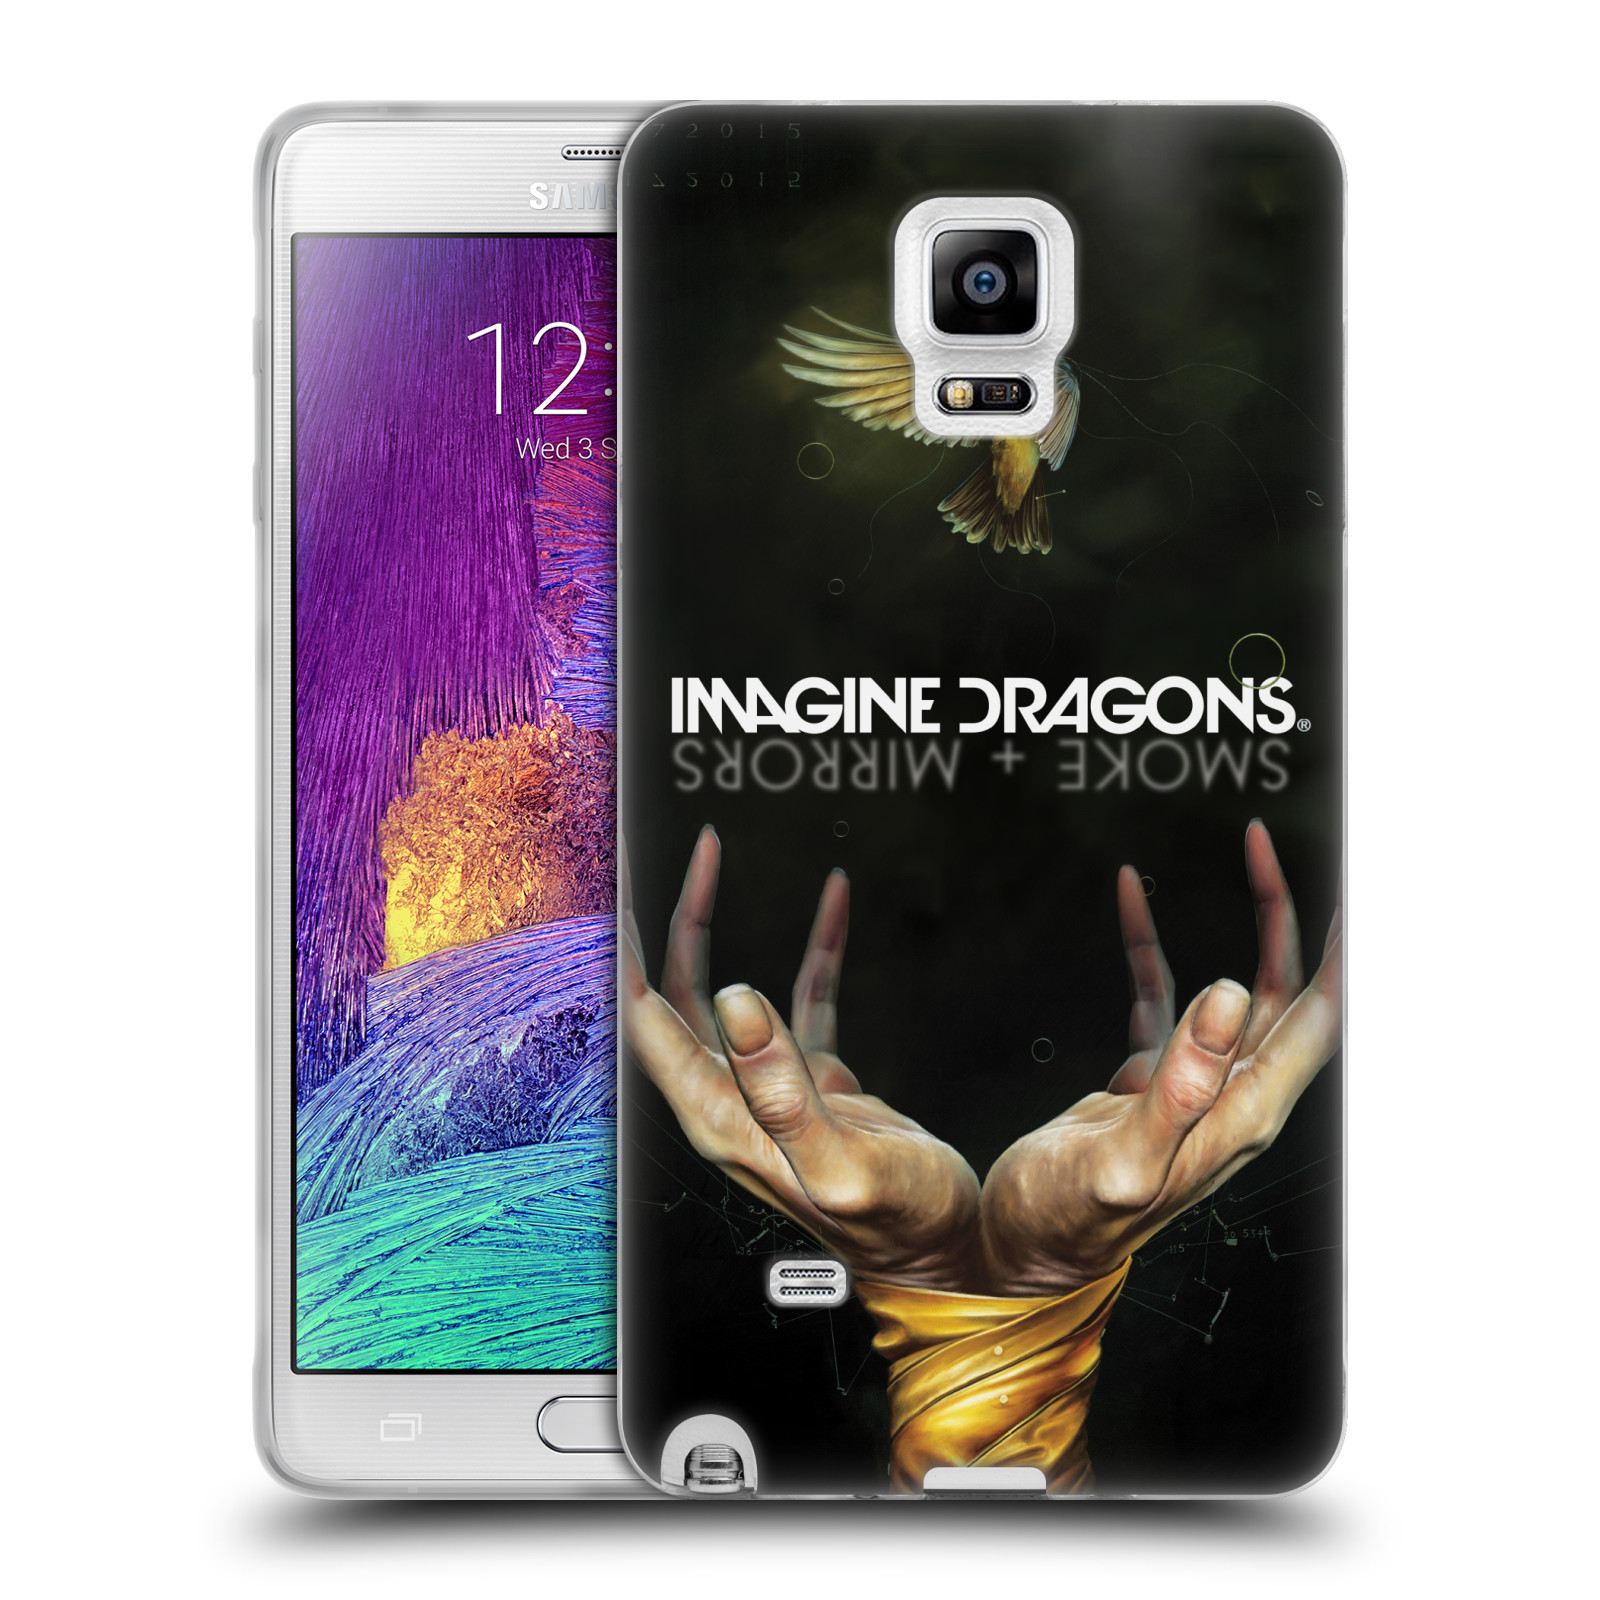 HEAD CASE silikonový obal na mobil Samsung Galaxy Note 4 hudební skupina Imagine Dragons SMOKE and MIRRORS